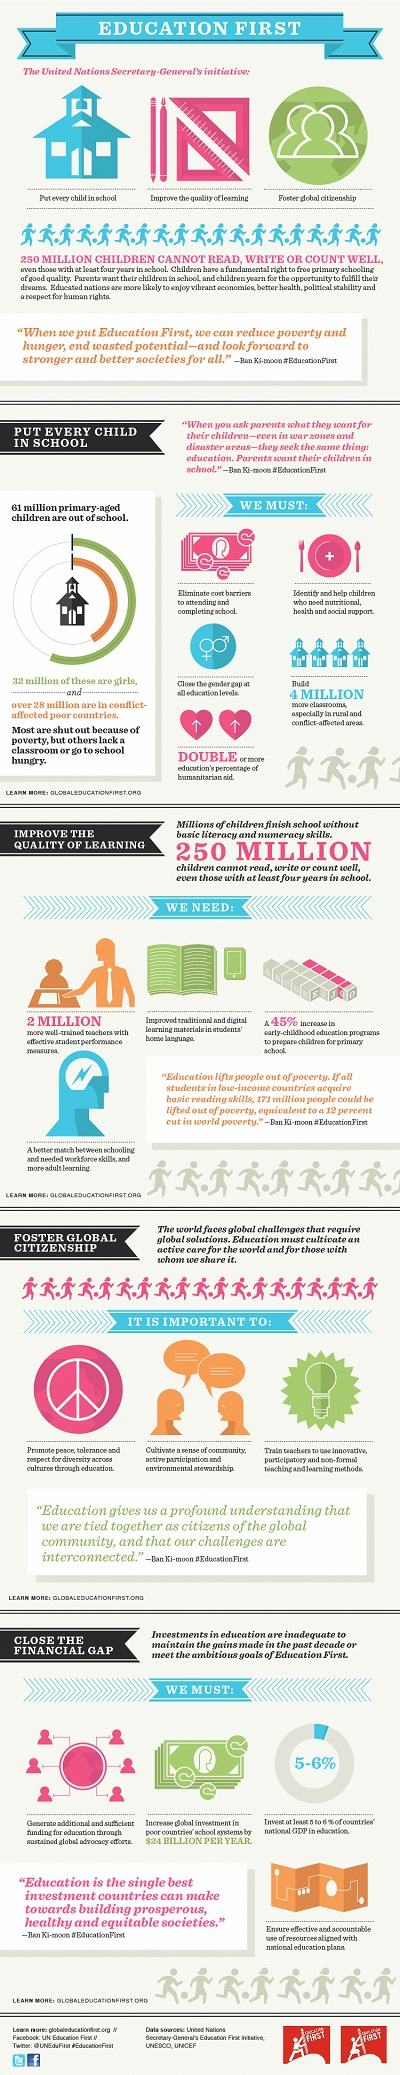 Education_First_Infographic_section-full_-_resized